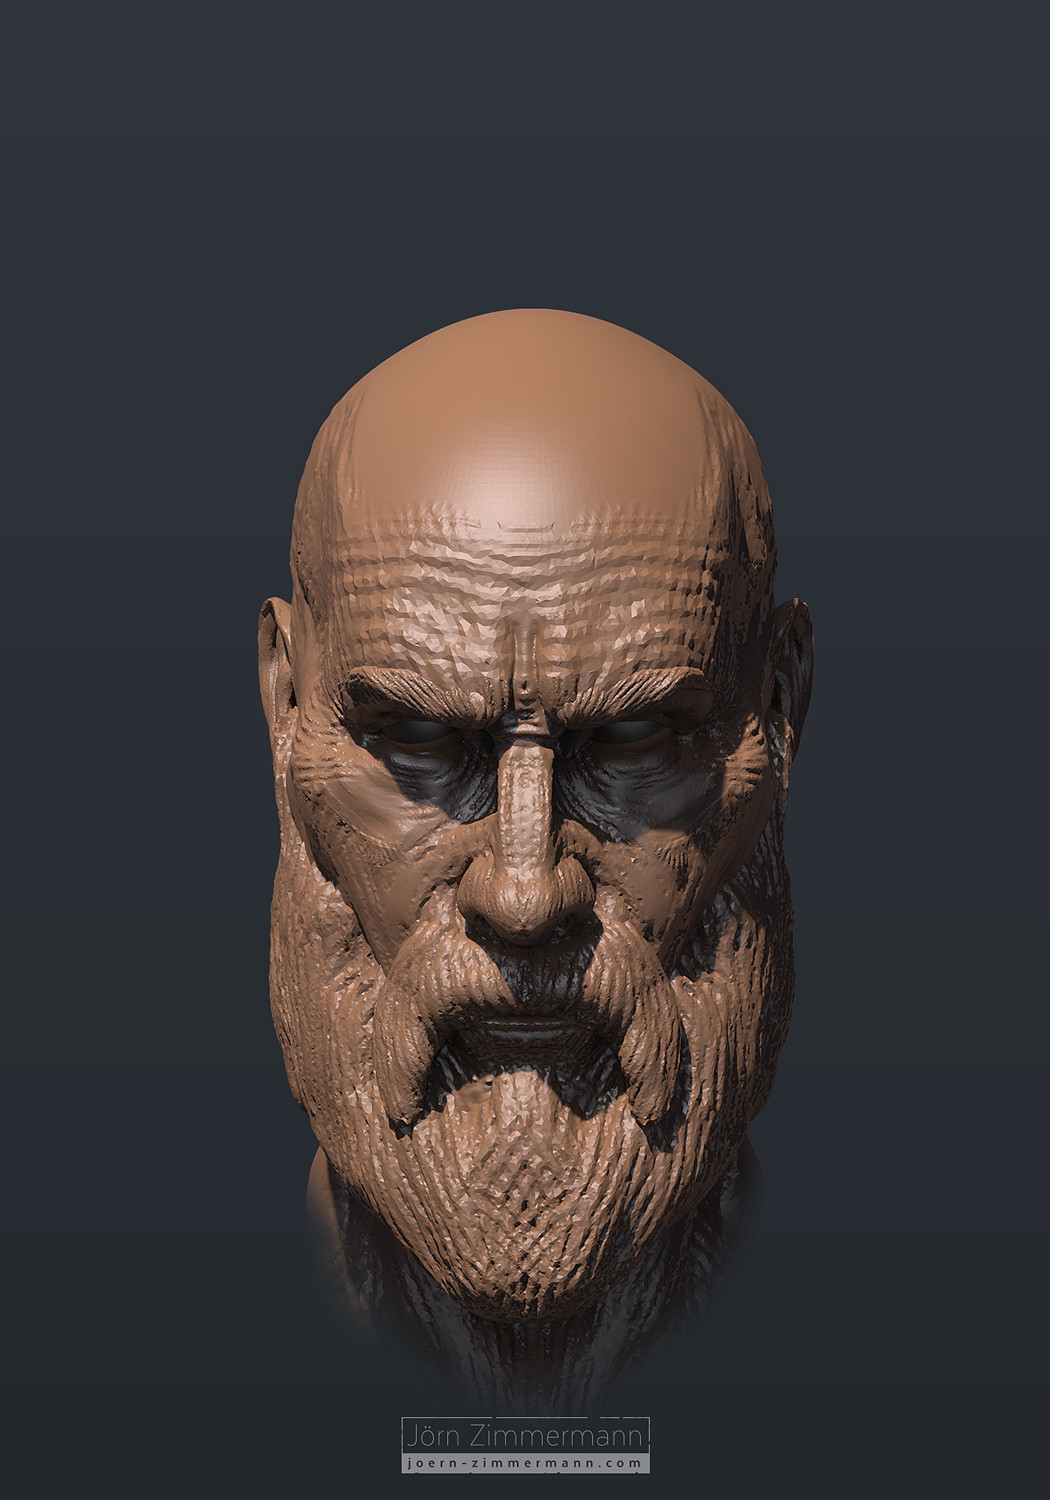 Joern zimmermann jz kratos sketch ks clay